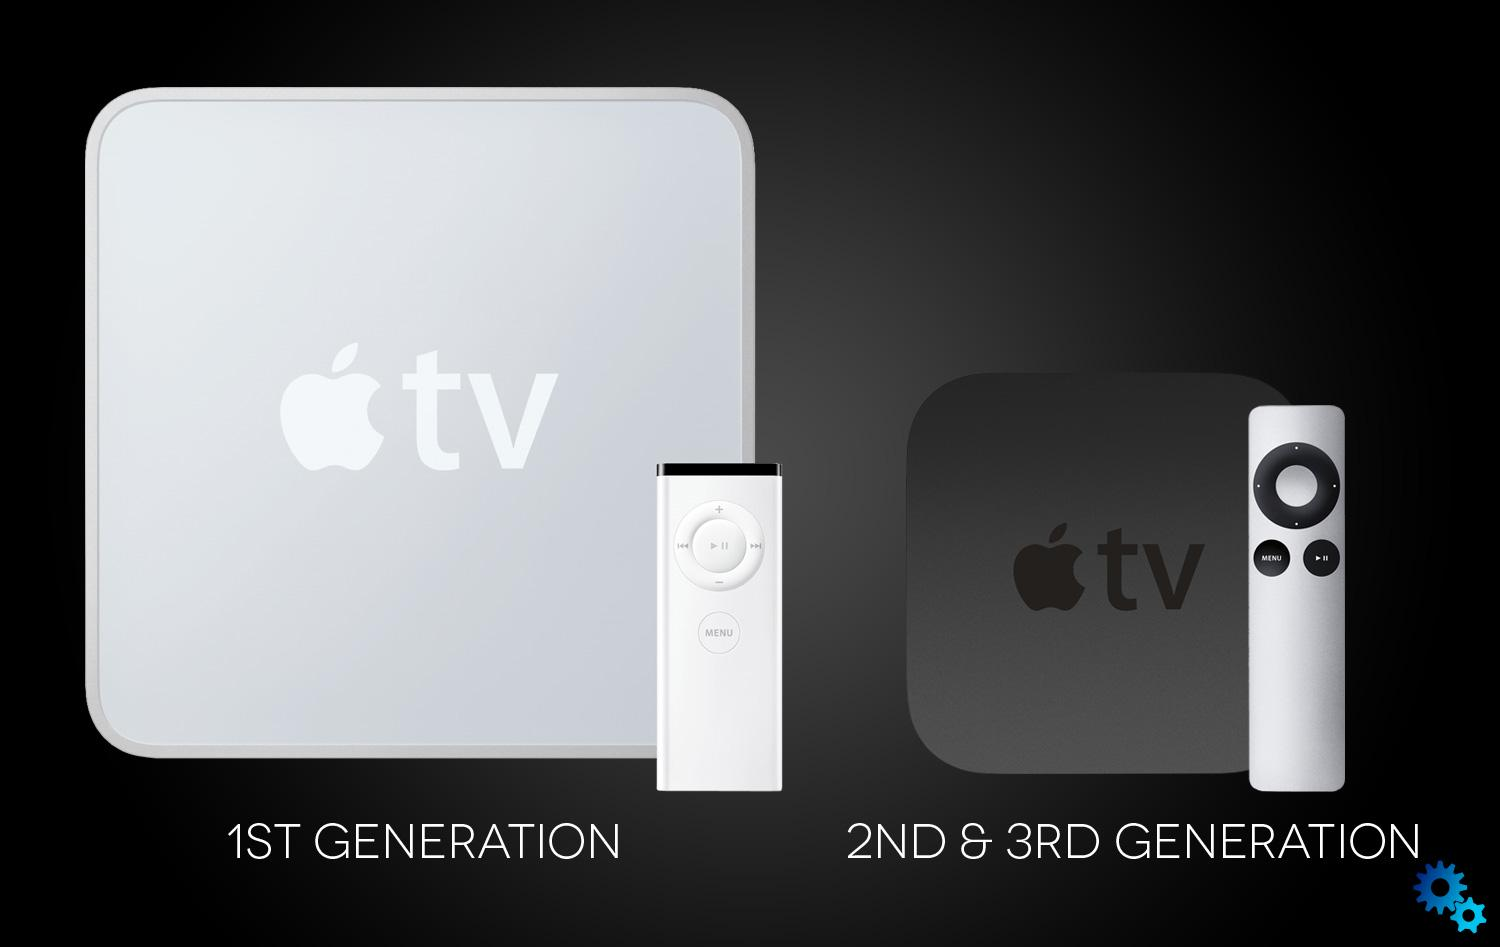 From speculation to 4K and  TV +: How did the evolution of apple television go?